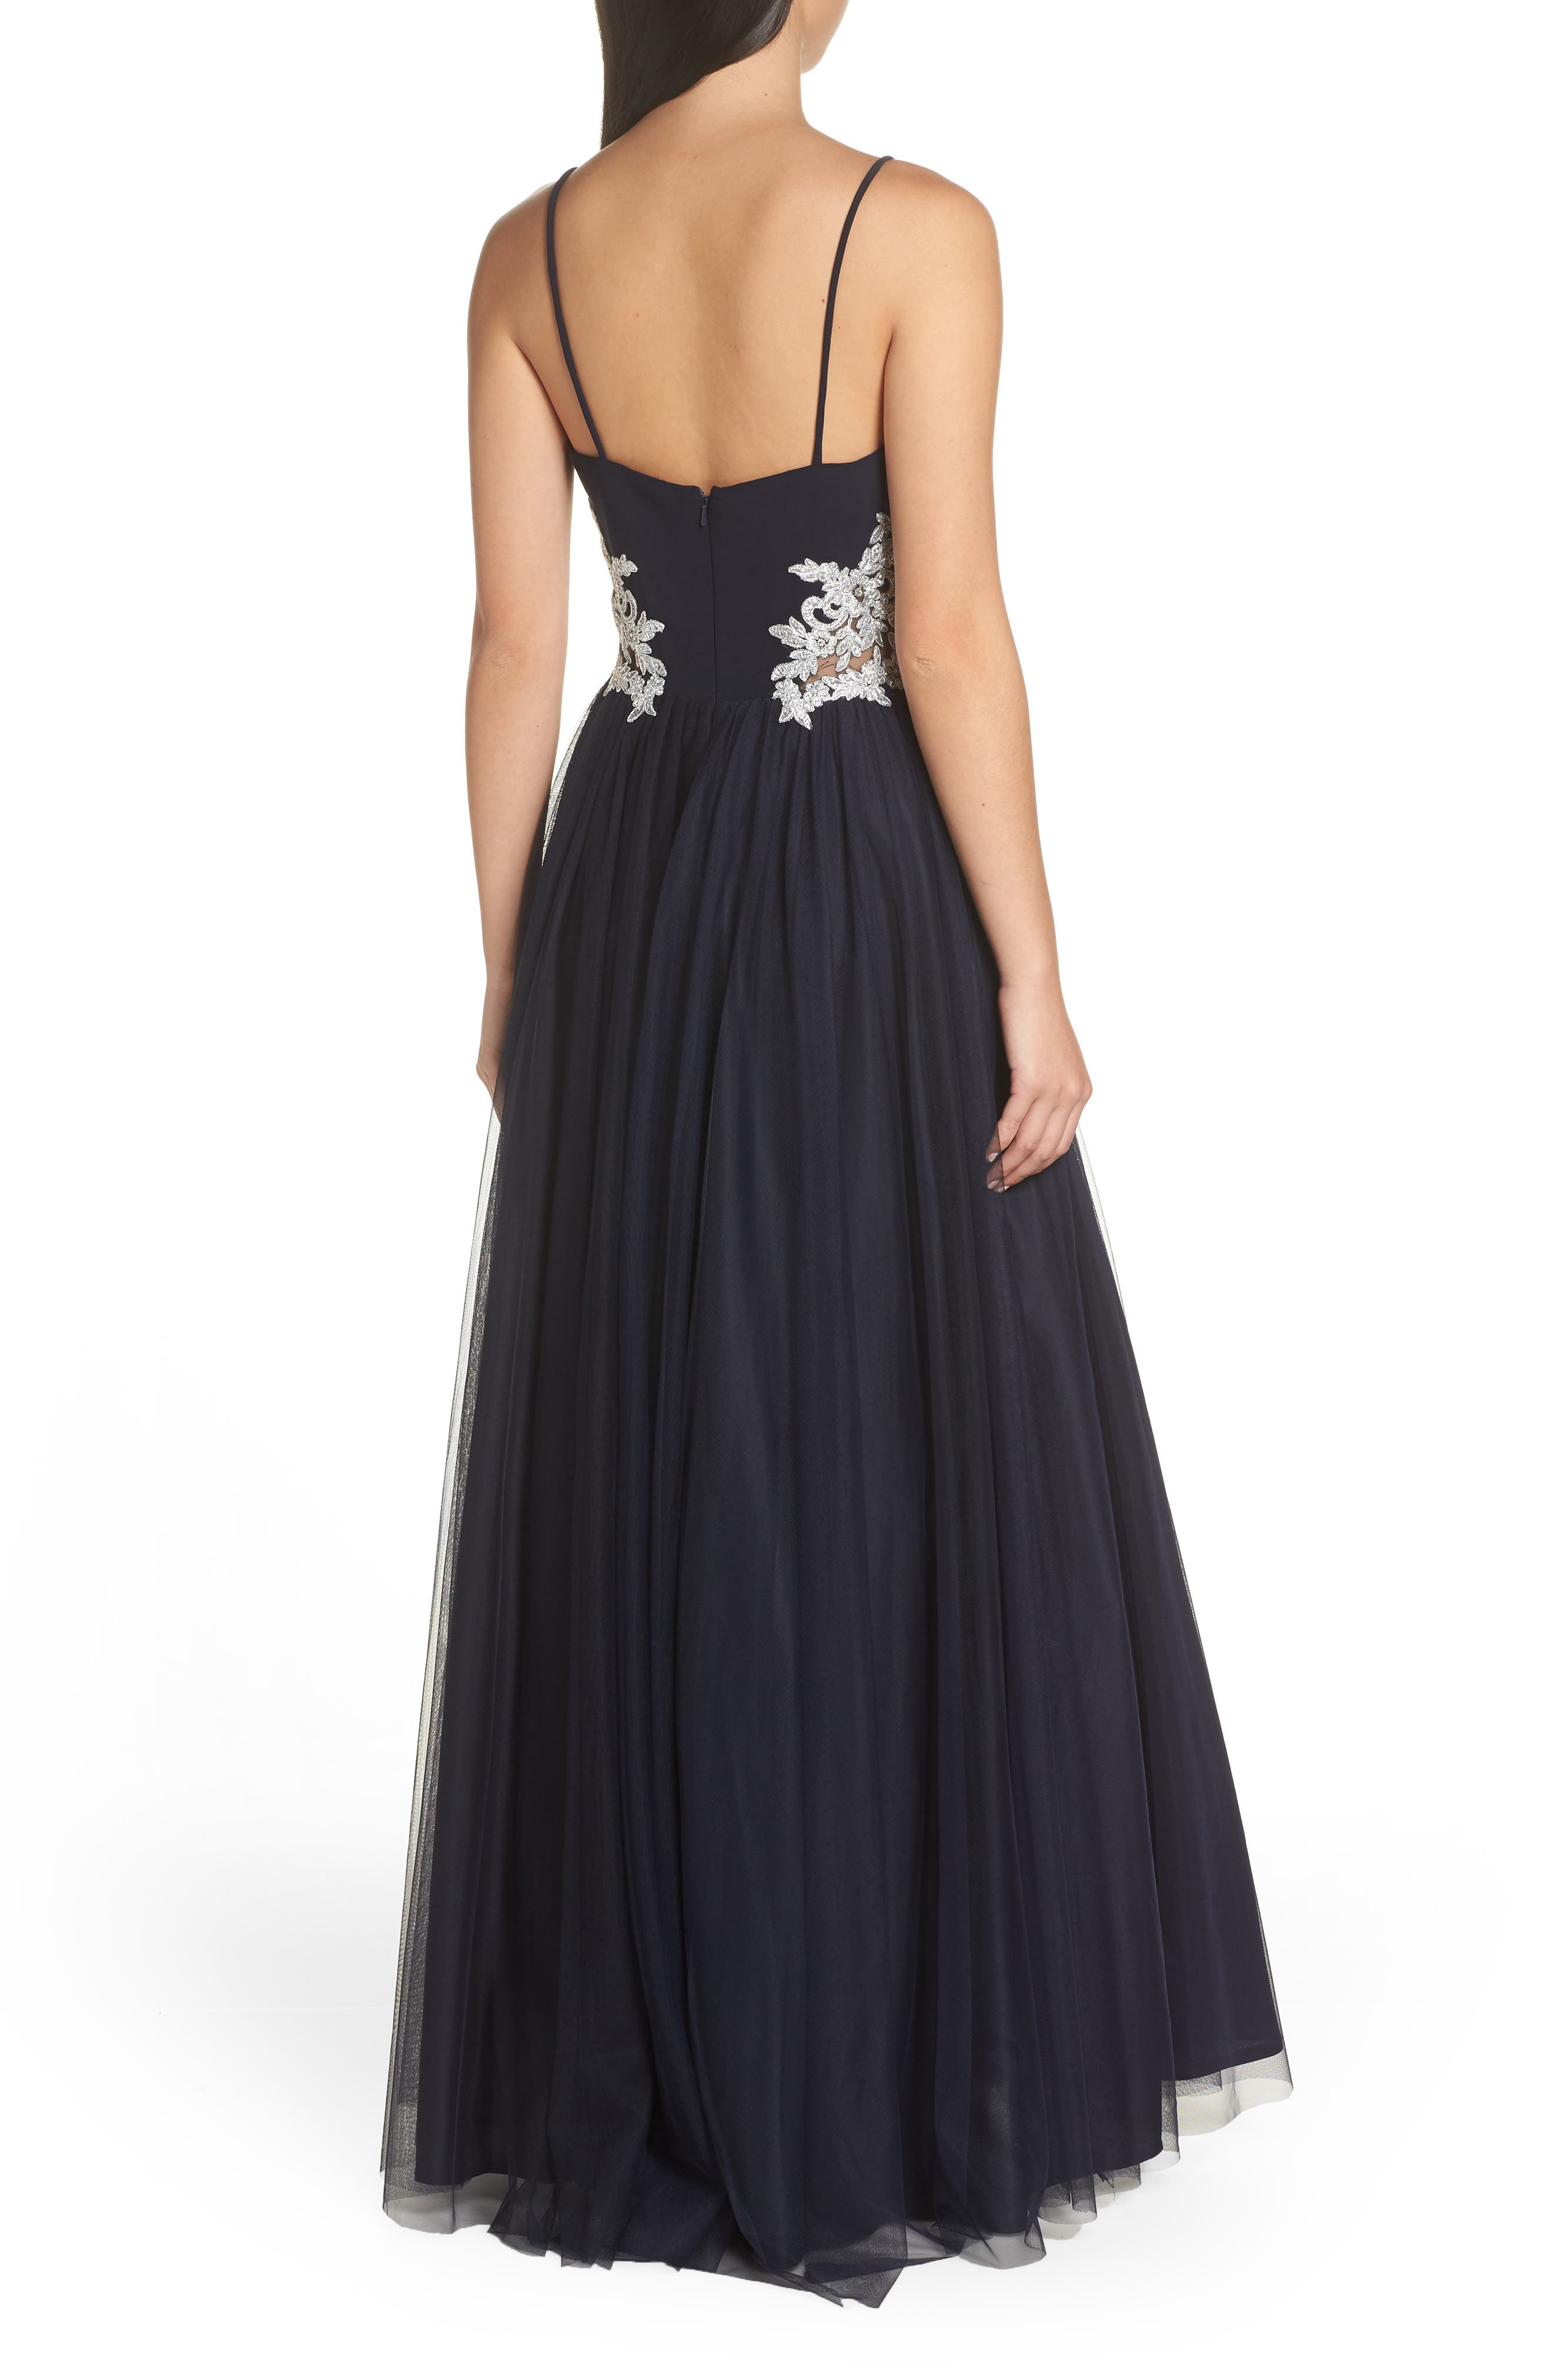 Blondie Nights Embellished Tulle Gown,                             Alternate thumbnail 2, color,                             NAVY/ SILVER